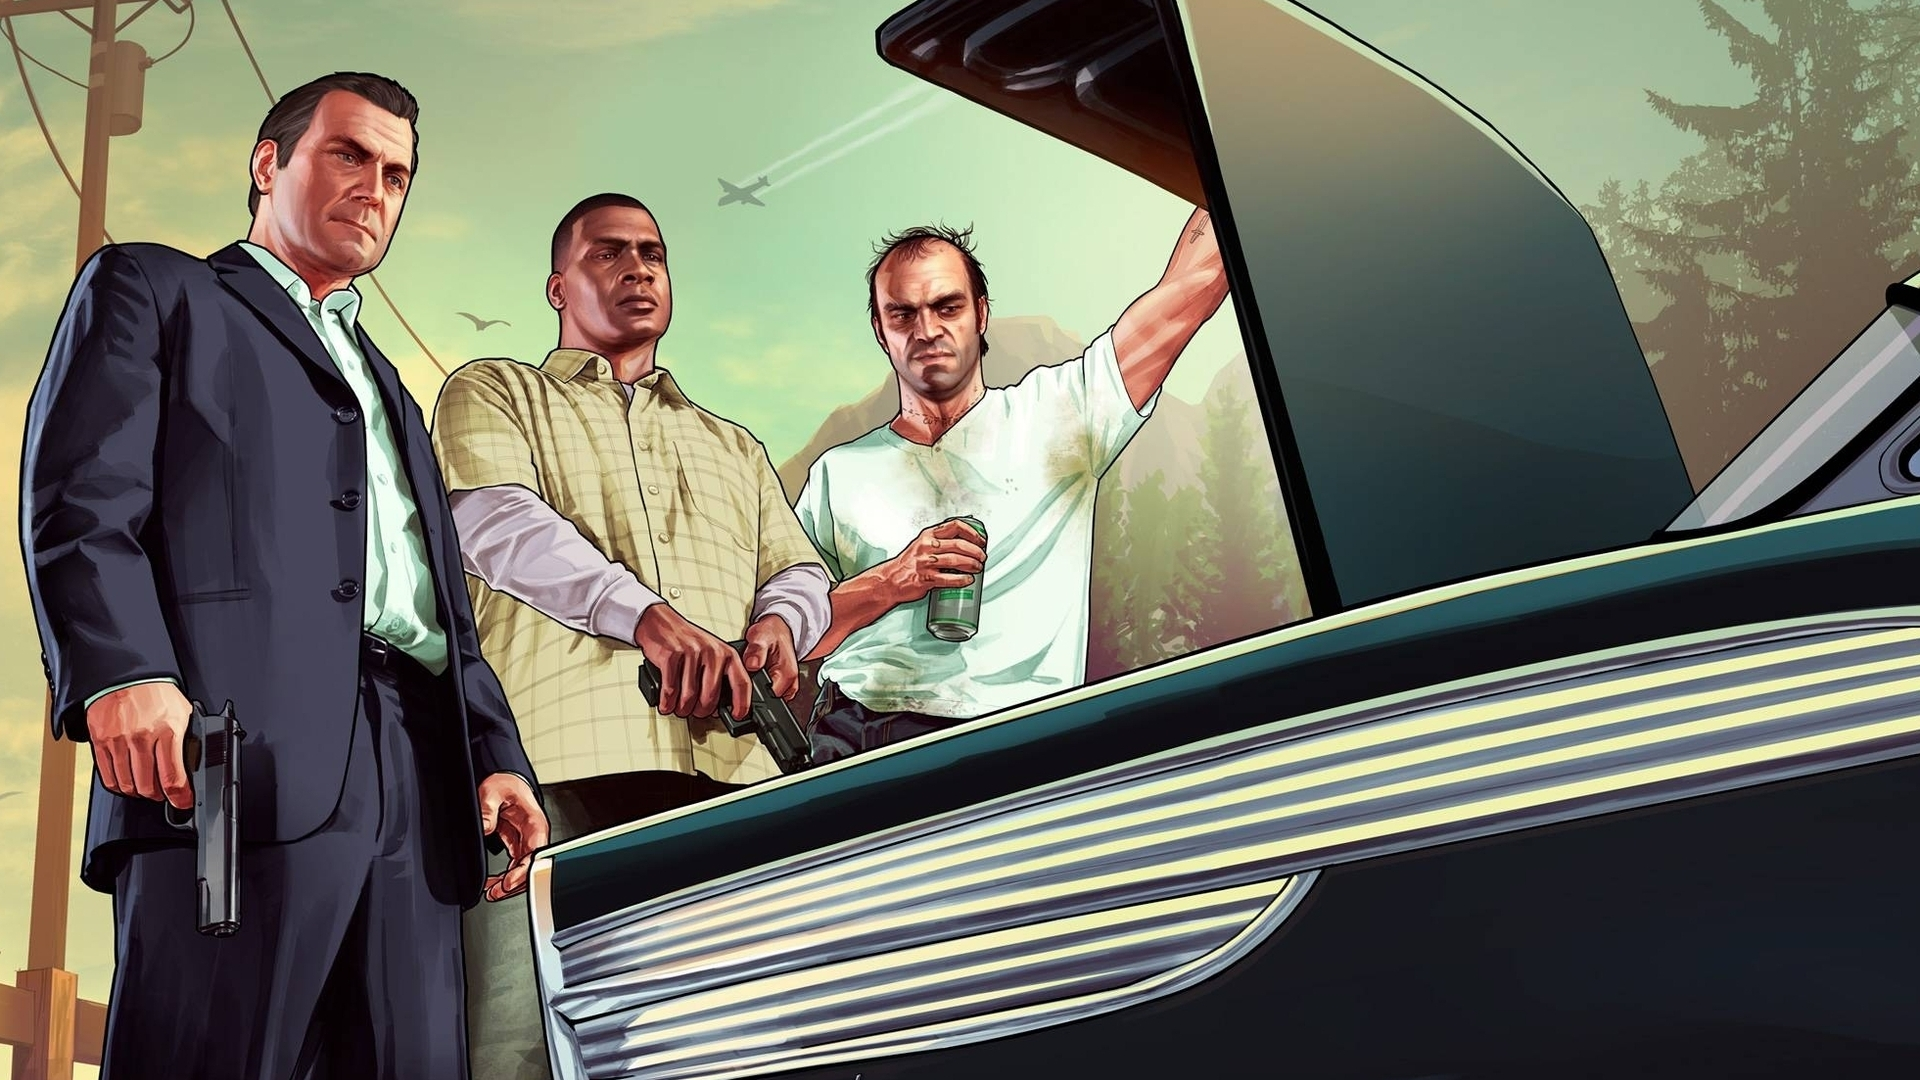 """You want to find Kurtz every time"": Sam Houser speaks out on GTA 5"